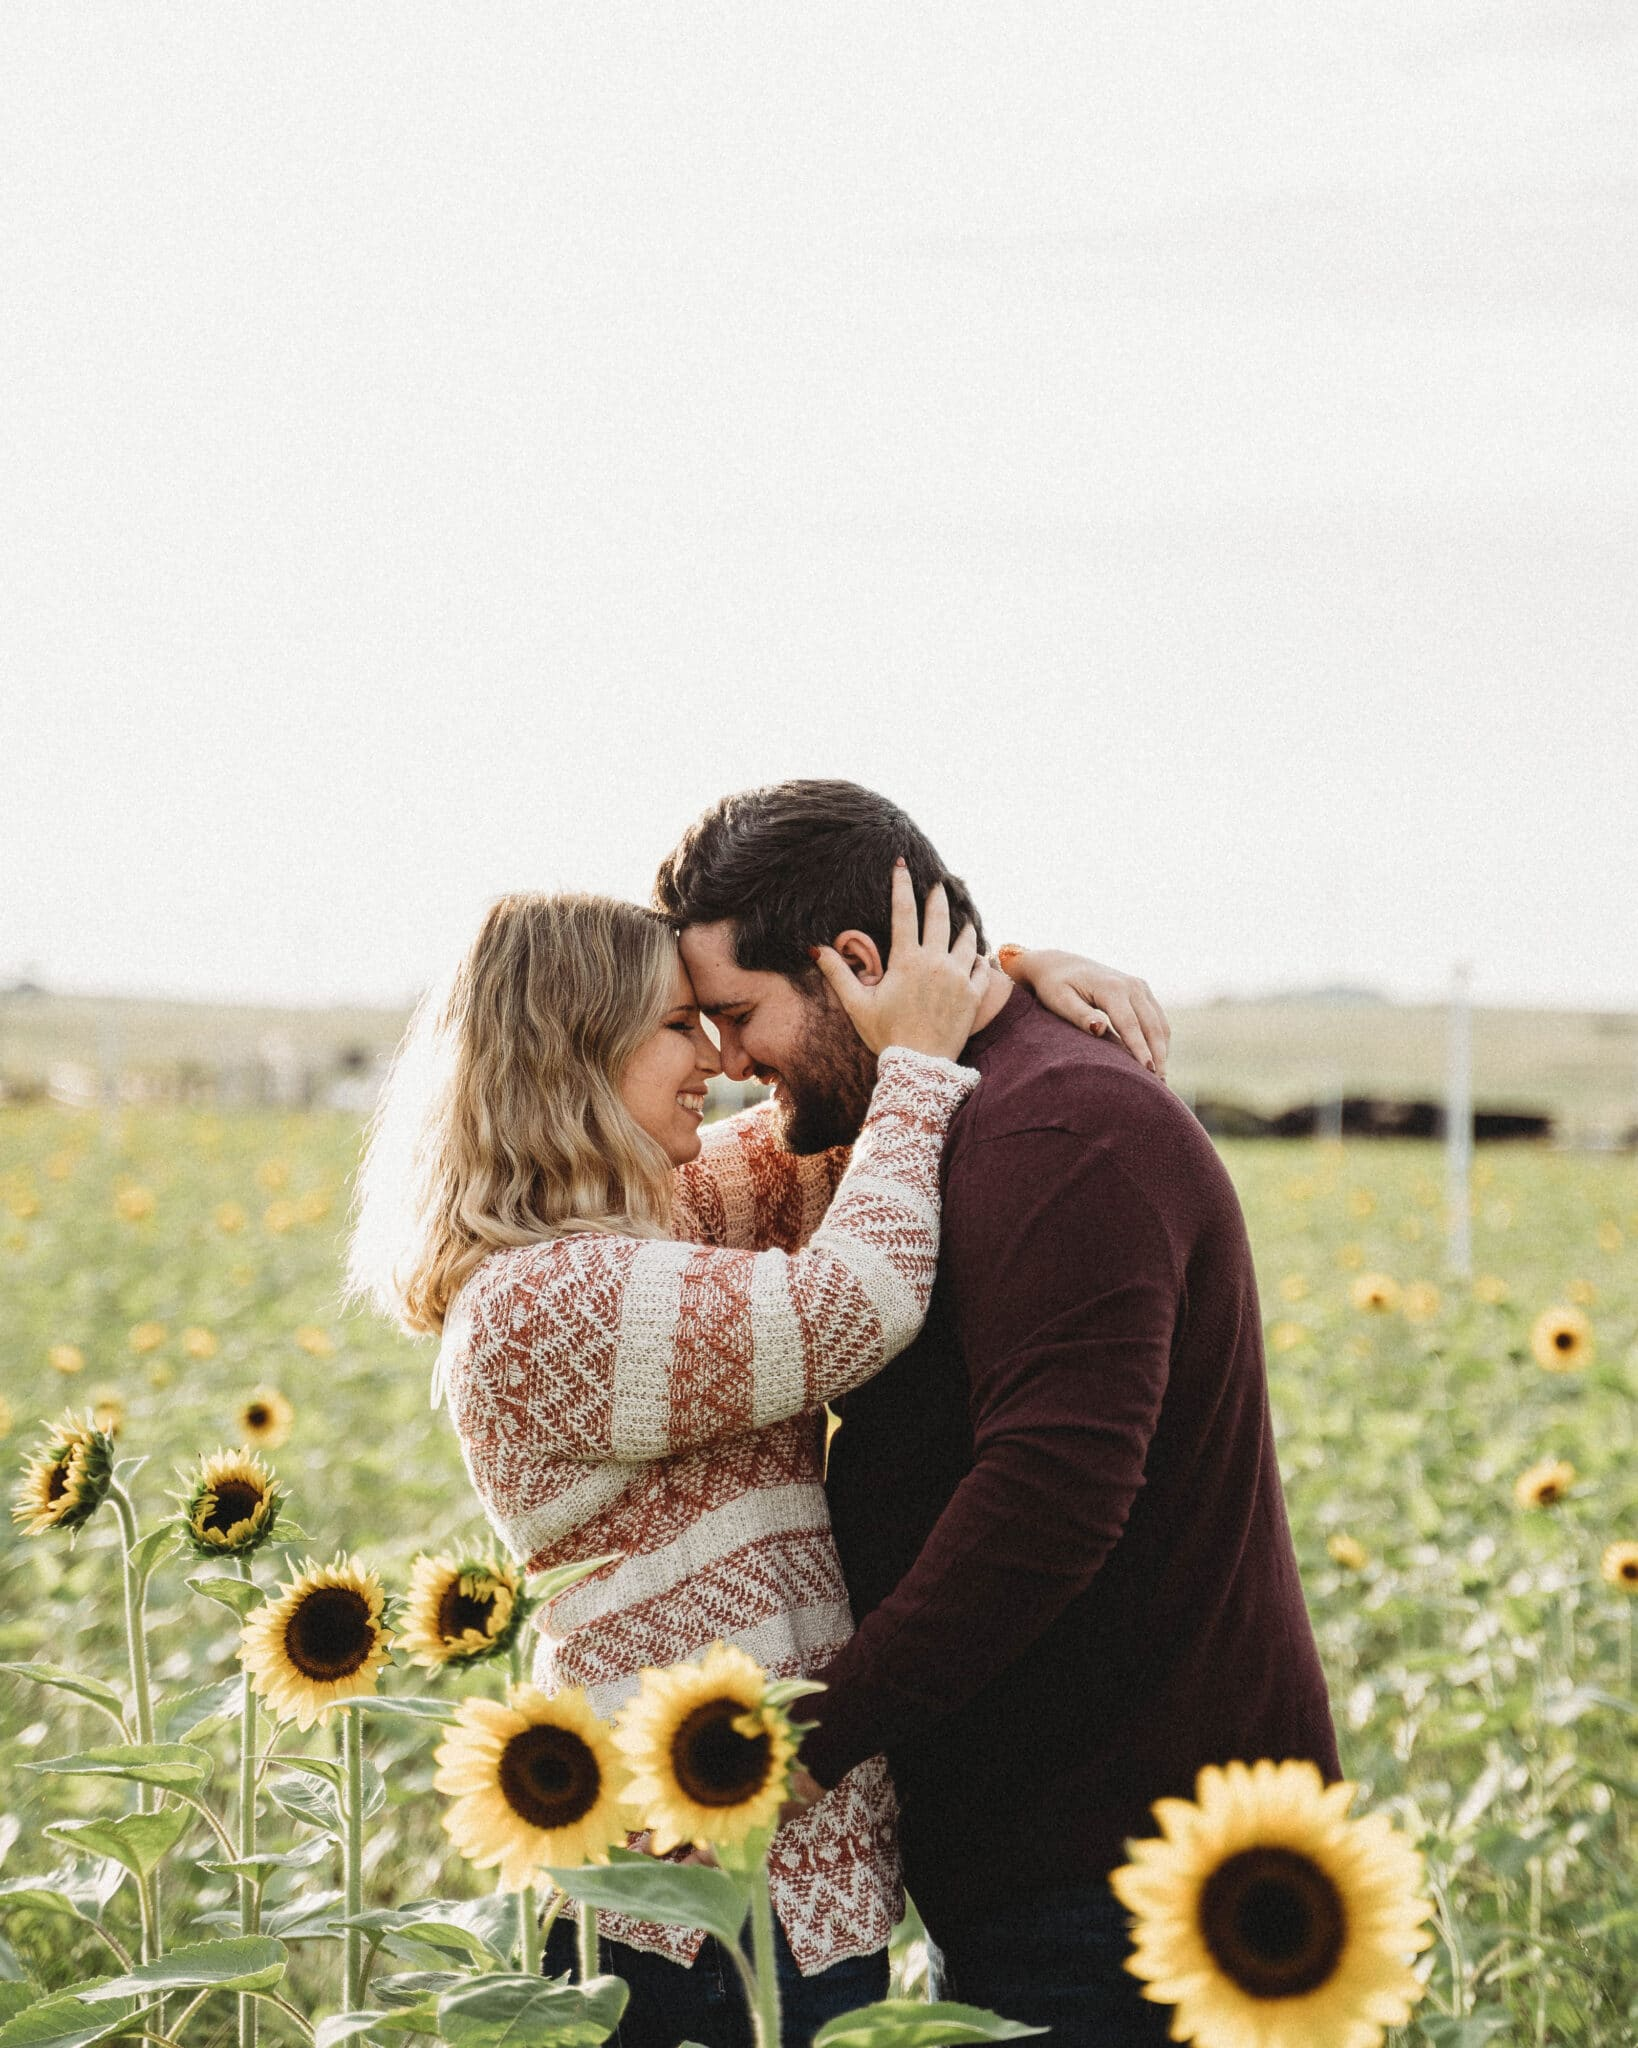 newly engaged couple standing in a sunflower field holding each other